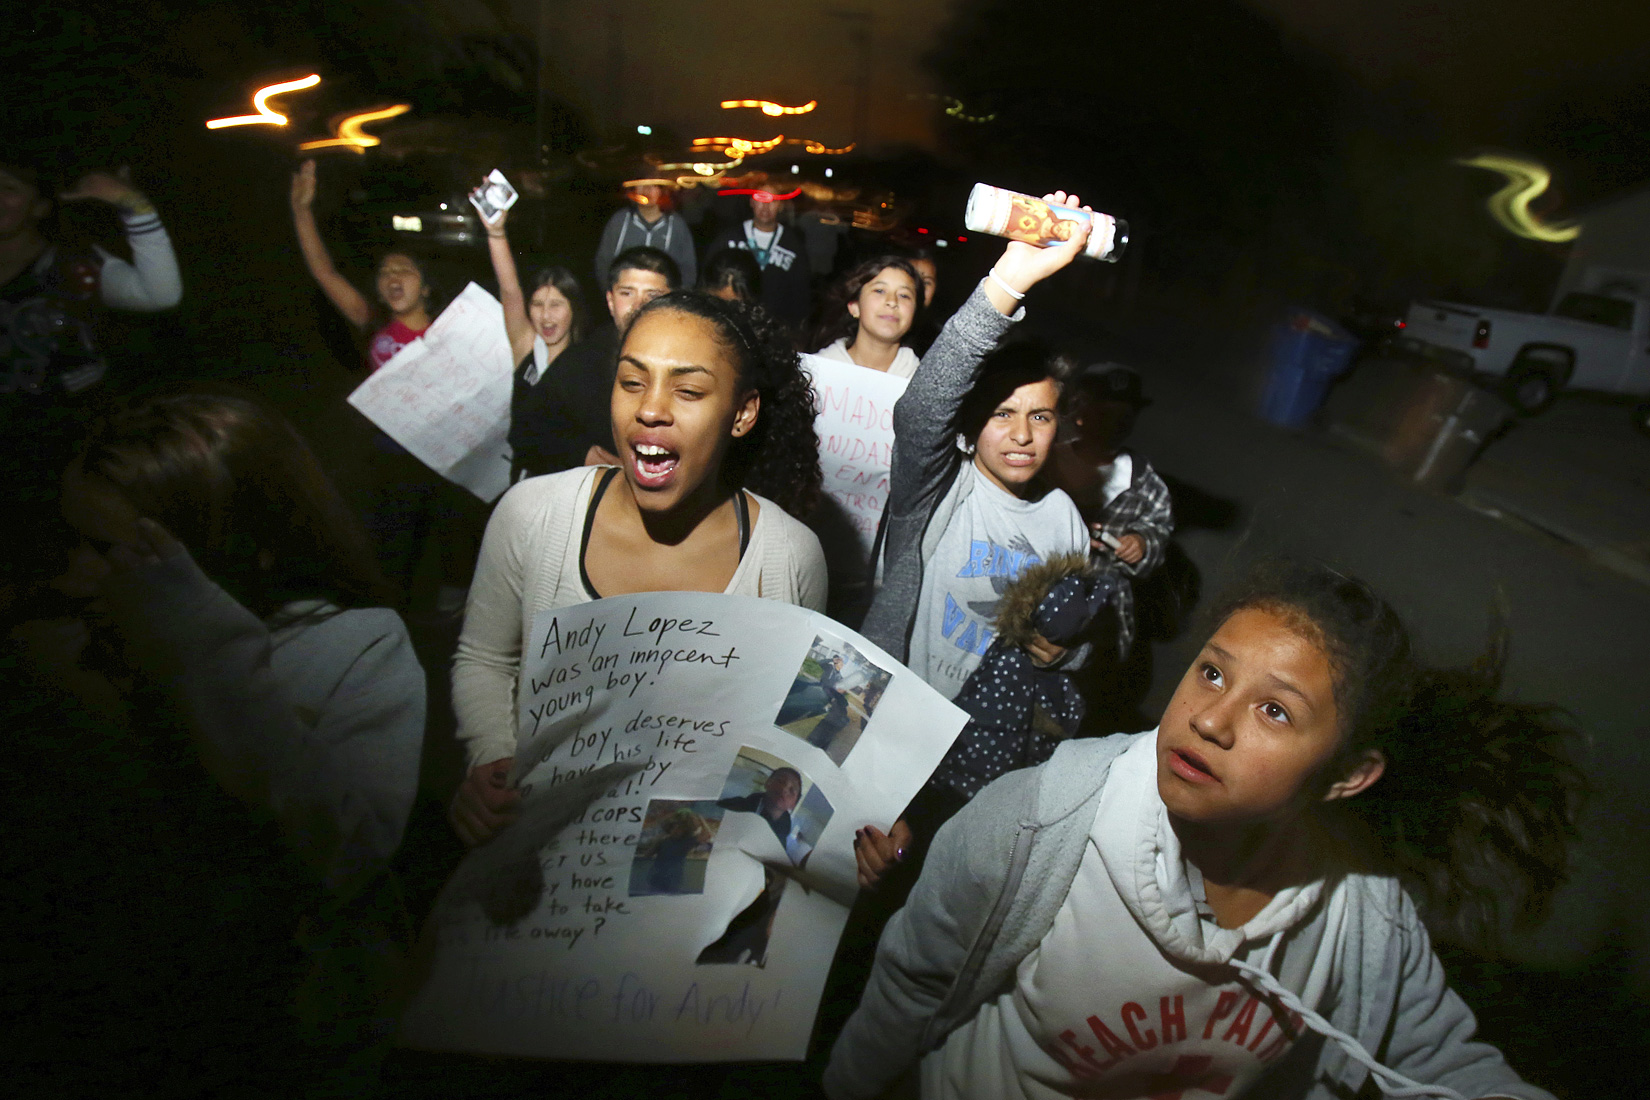 Students from Elsie Allen High School and Lawrence Cook Middle School march towards the site where 13-year-old Andy Lopez was shot and killed by a Sonoma County sheriff's deputy near the corner of Moorland and West Robles avenues in Santa Rosa, October 23, 2013. (Conner Jay/The Press Democrat)